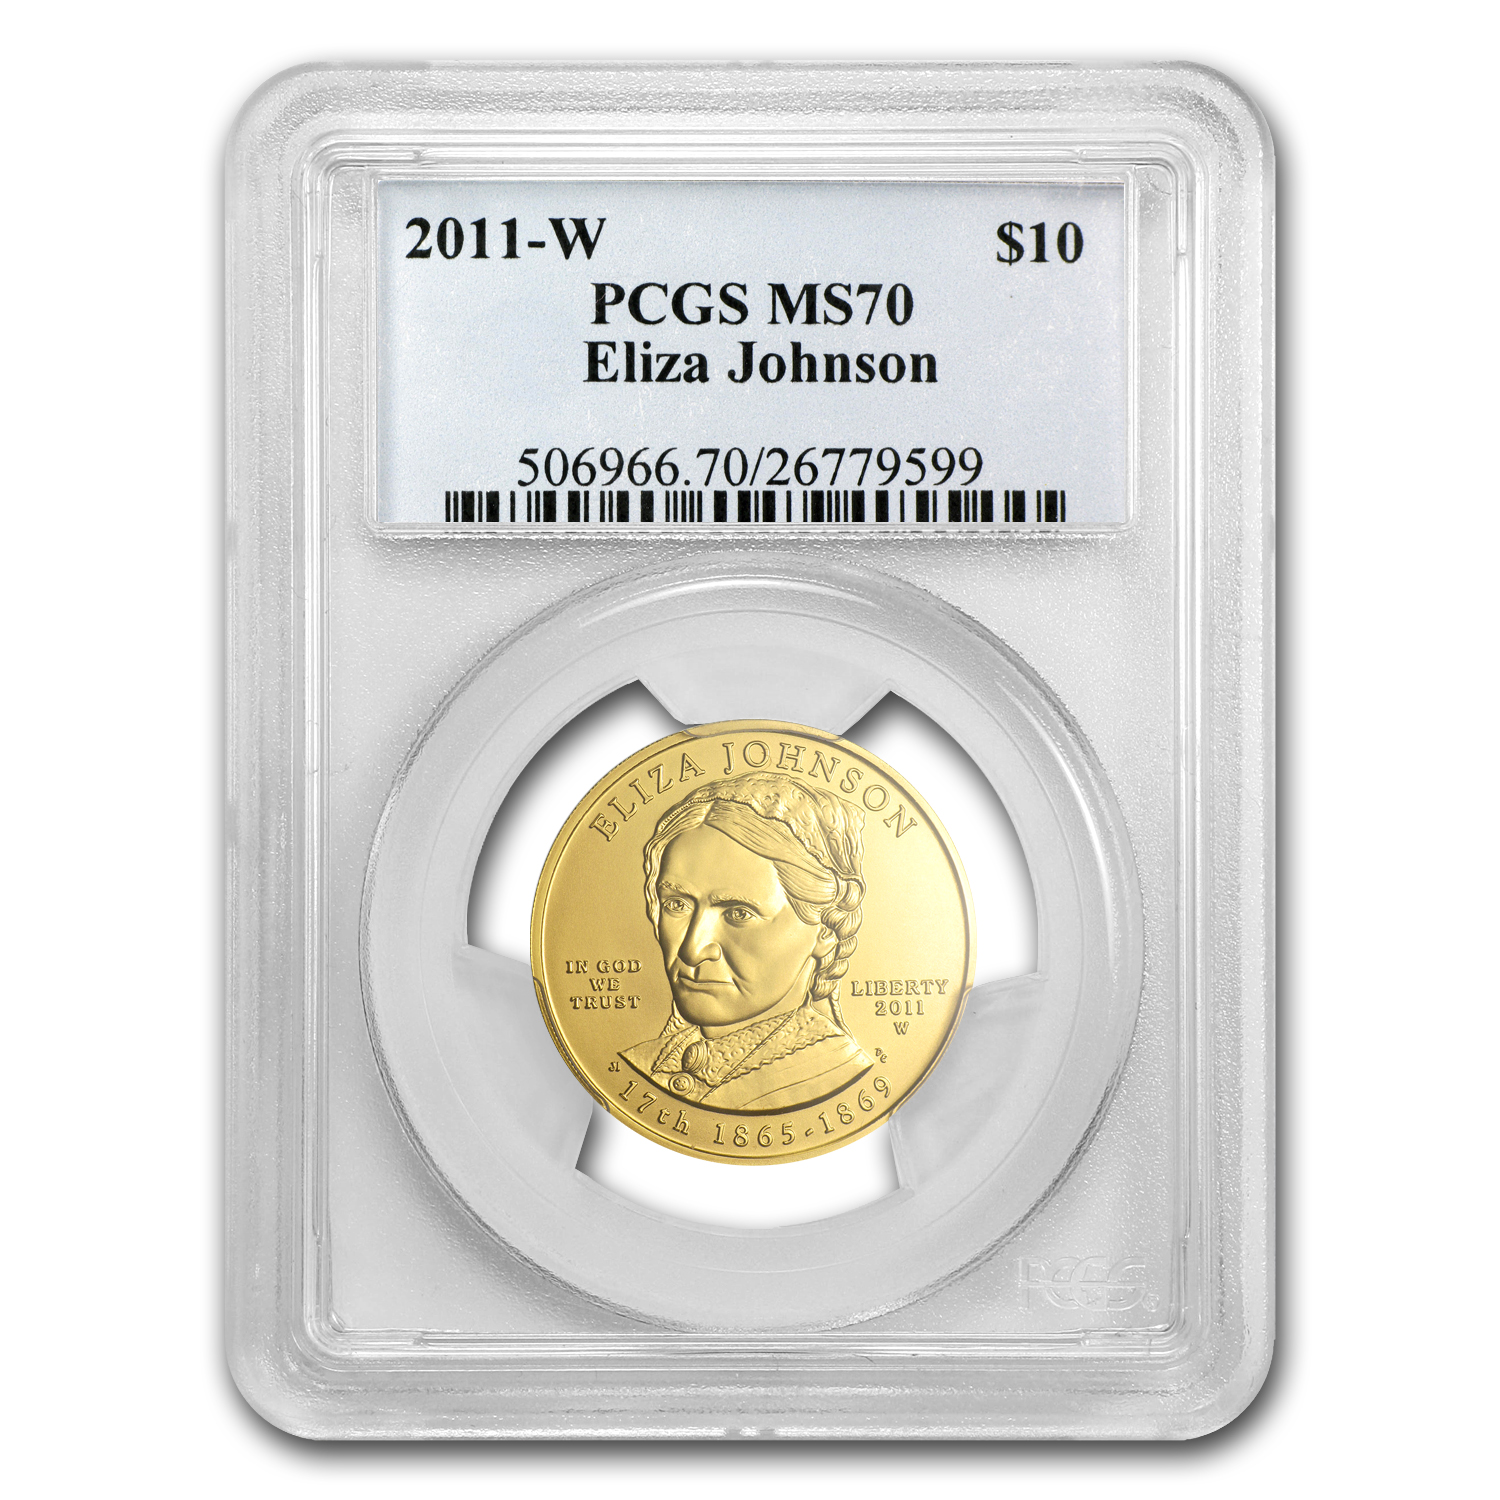 2011-W 1/2 oz Gold Eliza Johnson MS-70 PCGS (First Strike)